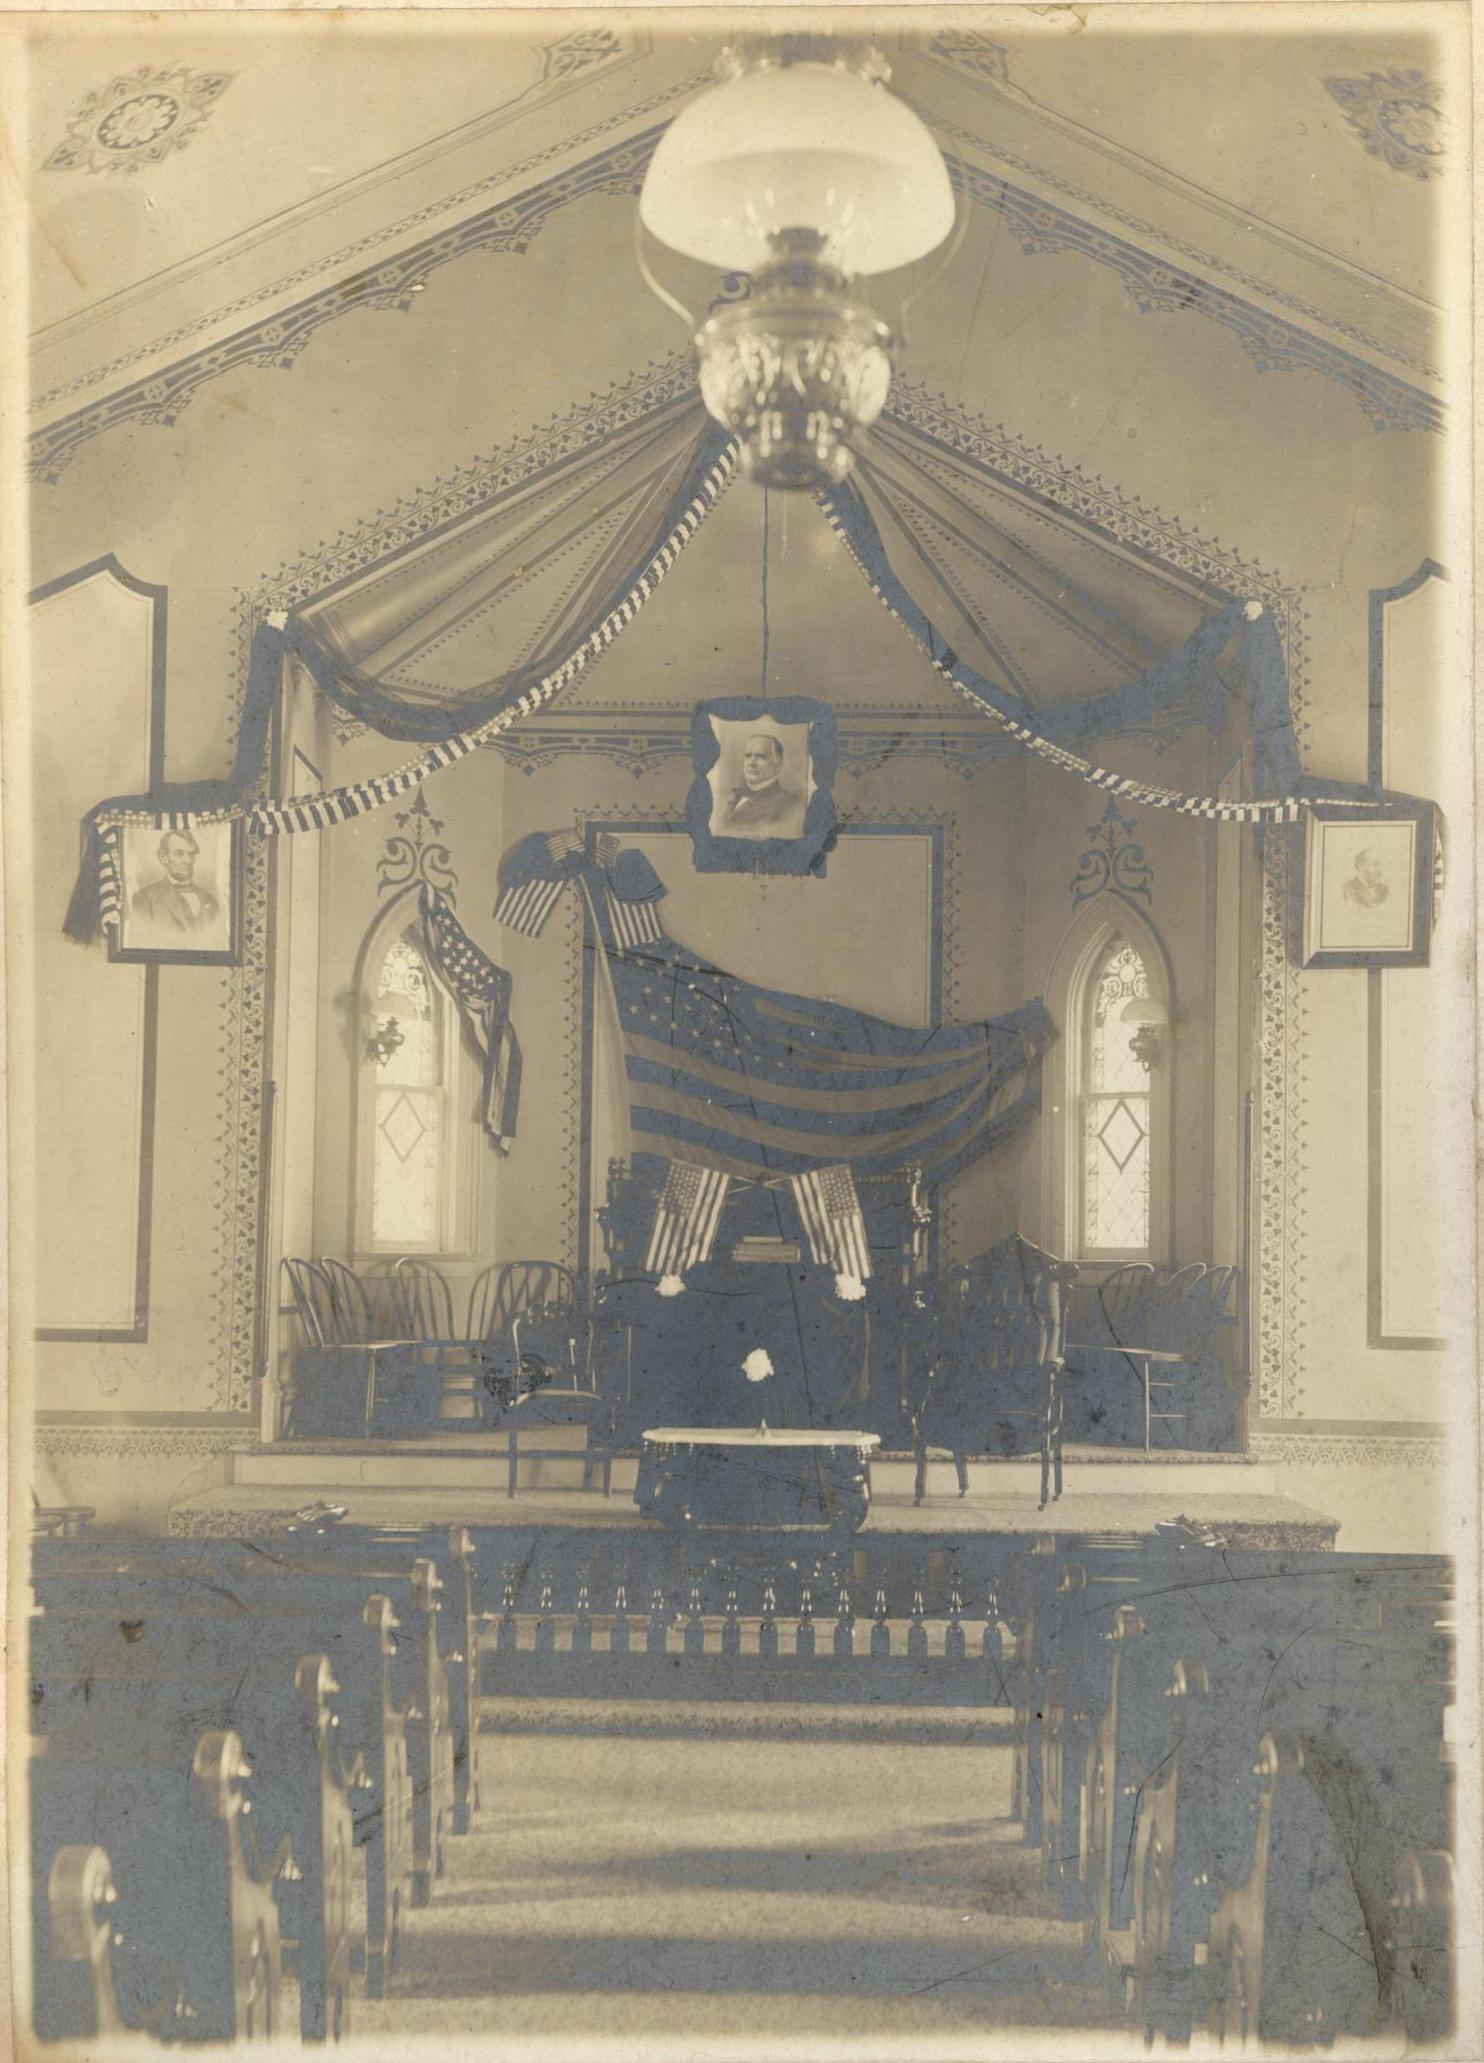 Inside the Cook Street church. Taken at the time of President William  McKinley's memorial service. McKinley was assassinated in Buffalo, N.Y.  in September 1901